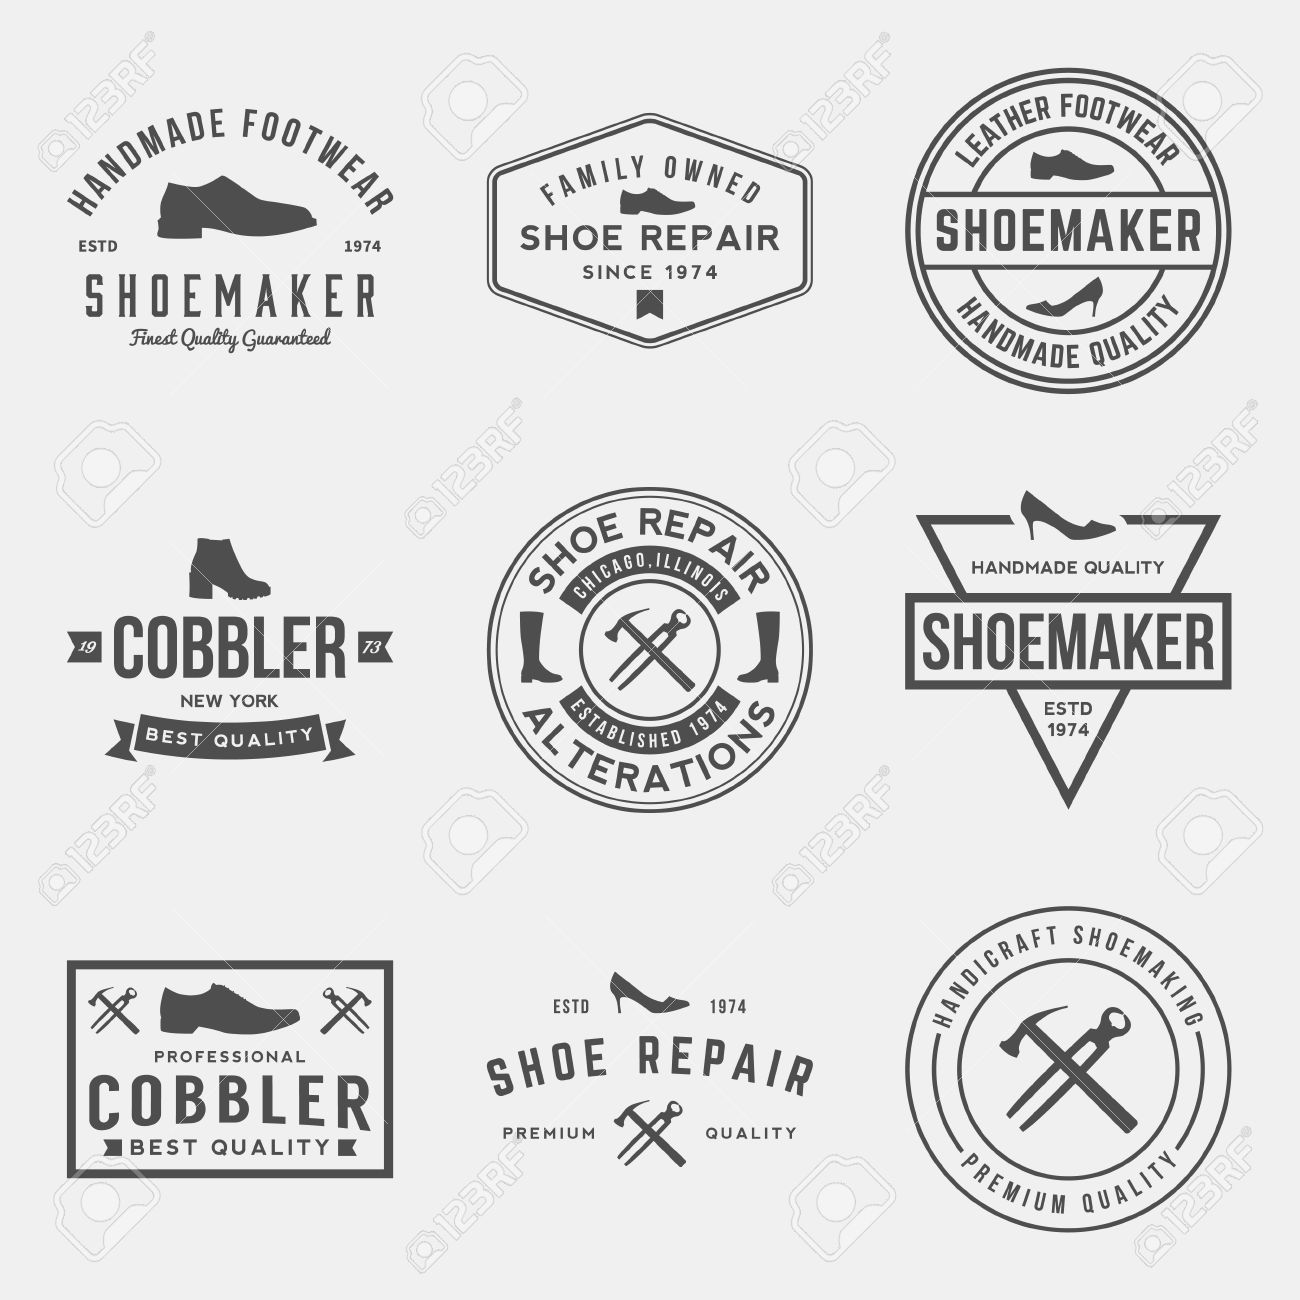 vector set of shoemaker and shoe repair labels, badges and design elements - 42864454